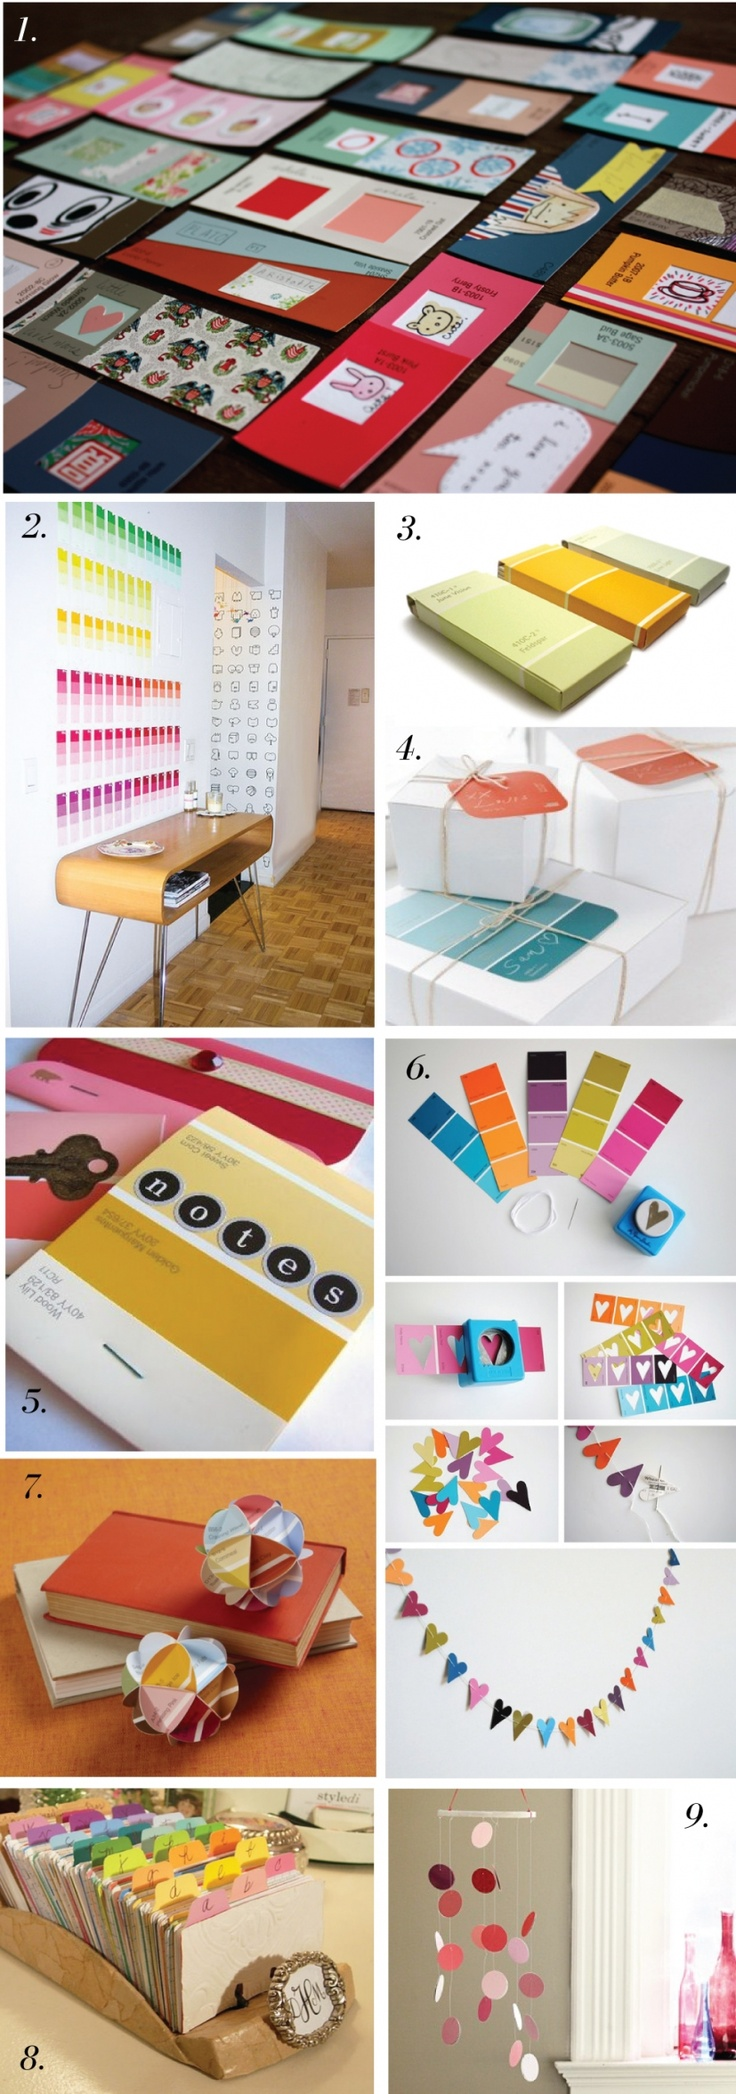 Paper craft using paint swatches...  http://deluxemoderndesign.com/blog/2011/05/something-from-nothing/